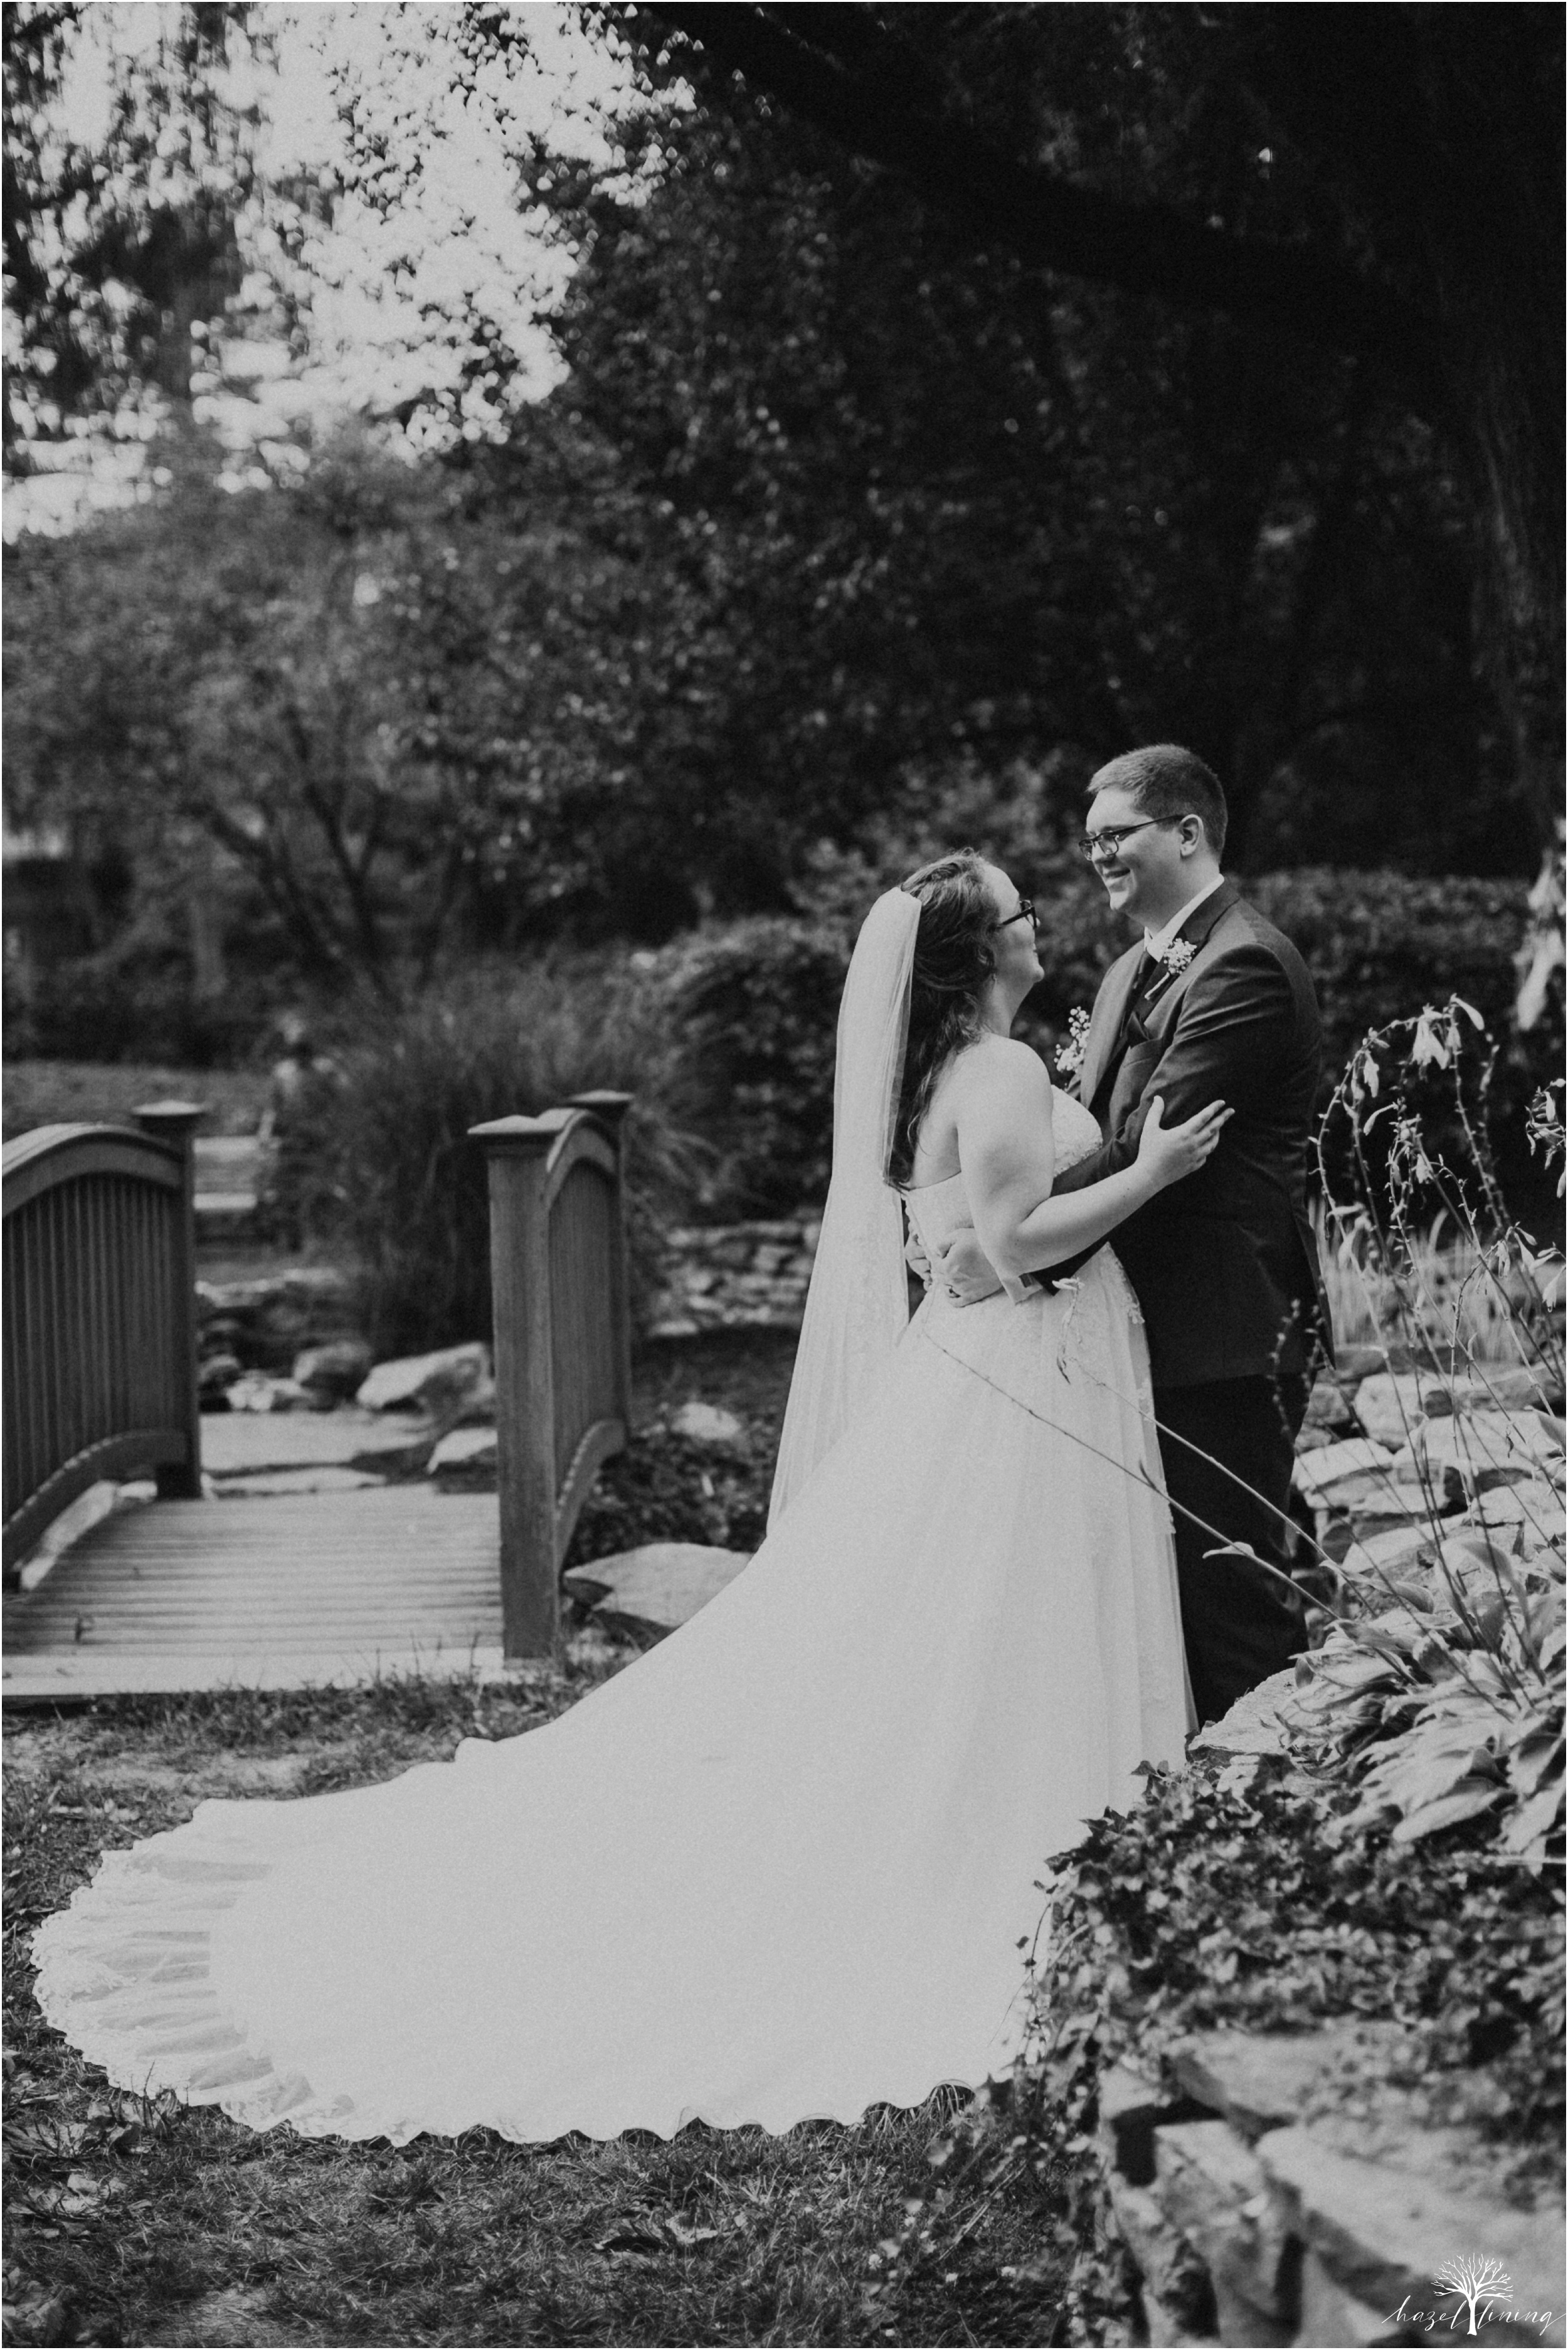 laura-zach-mccaskill-harmony-hall-lebanon-valley-college-summer-wedding-hazel-lining-photography-destination-elopement-wedding-engagement-photography_0088.jpg